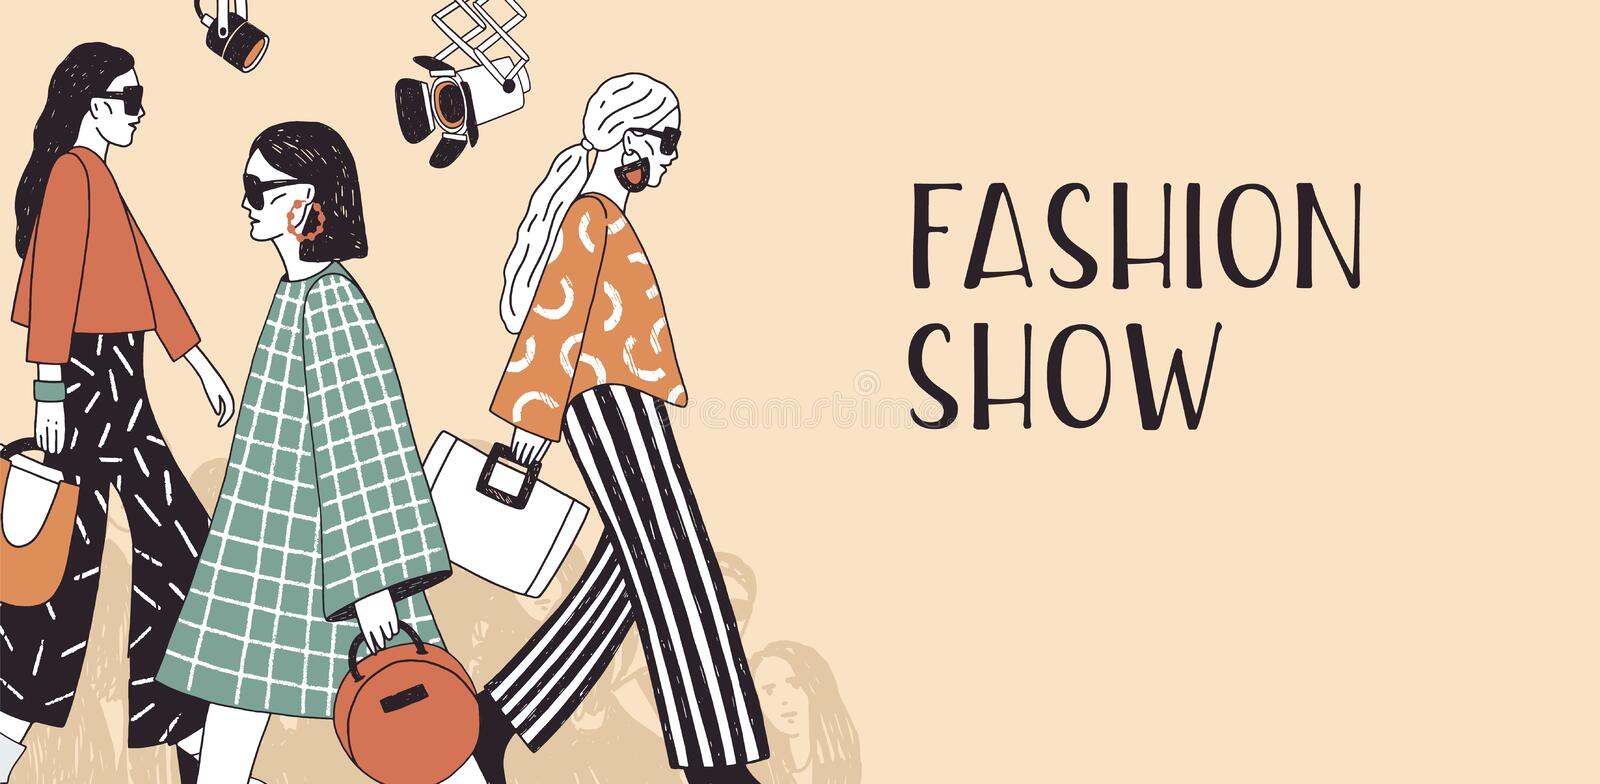 Banner template for fashion show with top models wearing trendy seasonal clothes walking along runway or doing catwalk stock illustration